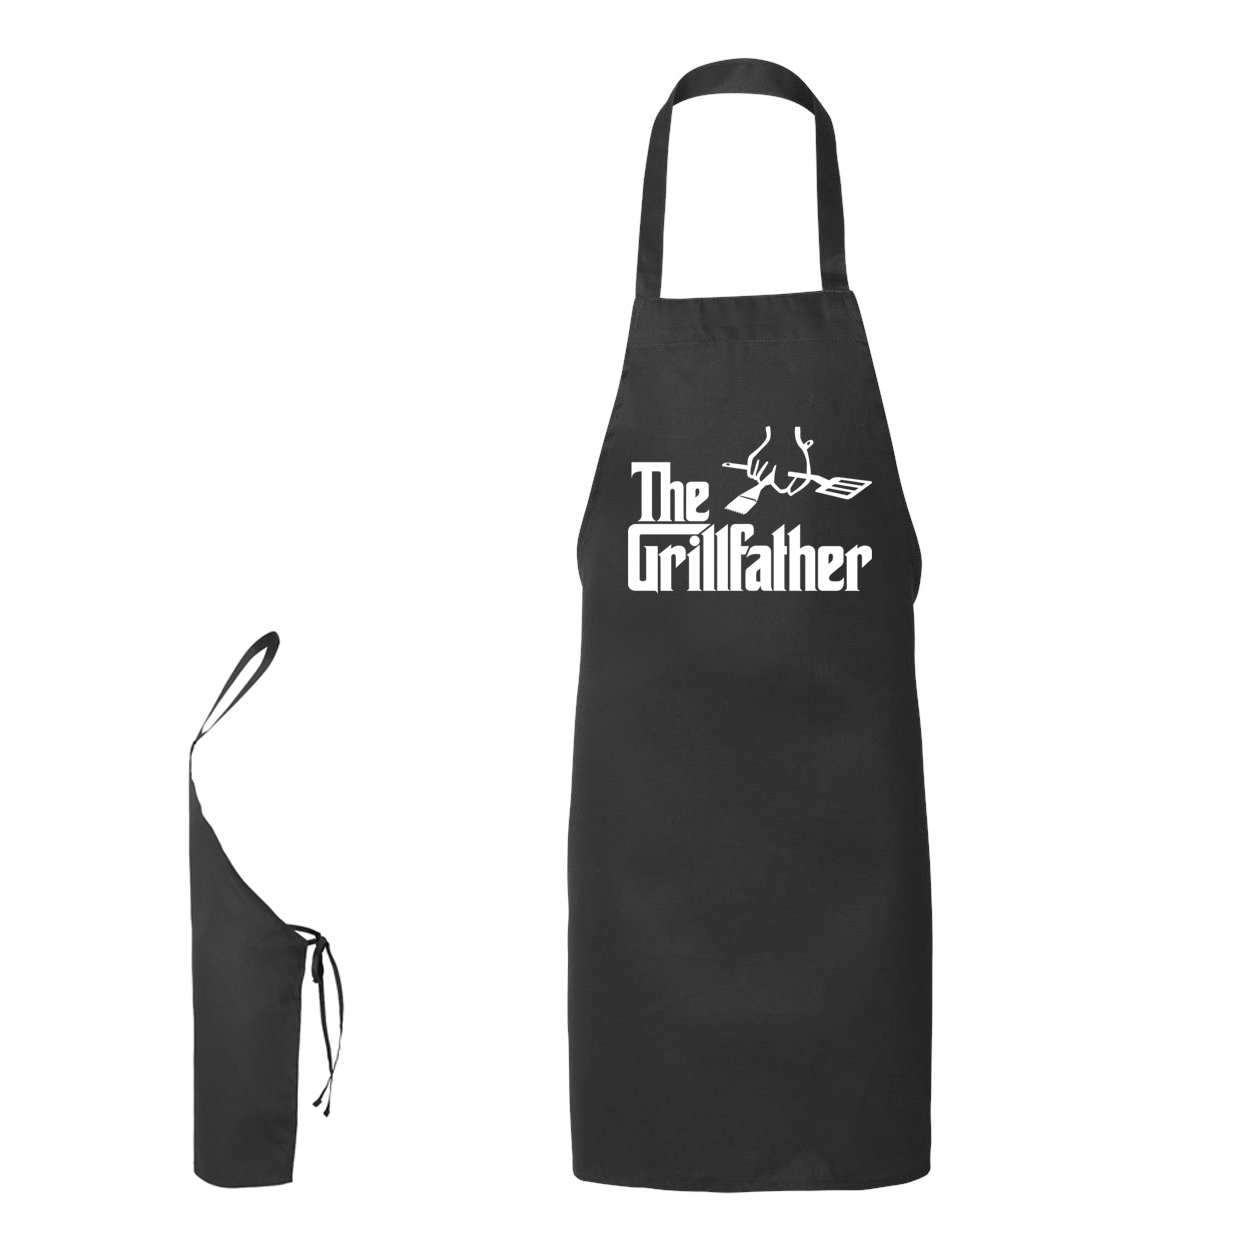 Funny BBQ Apron Novelty Aprons Cooking Gifts for Men Corn Star Hardcore Cornography